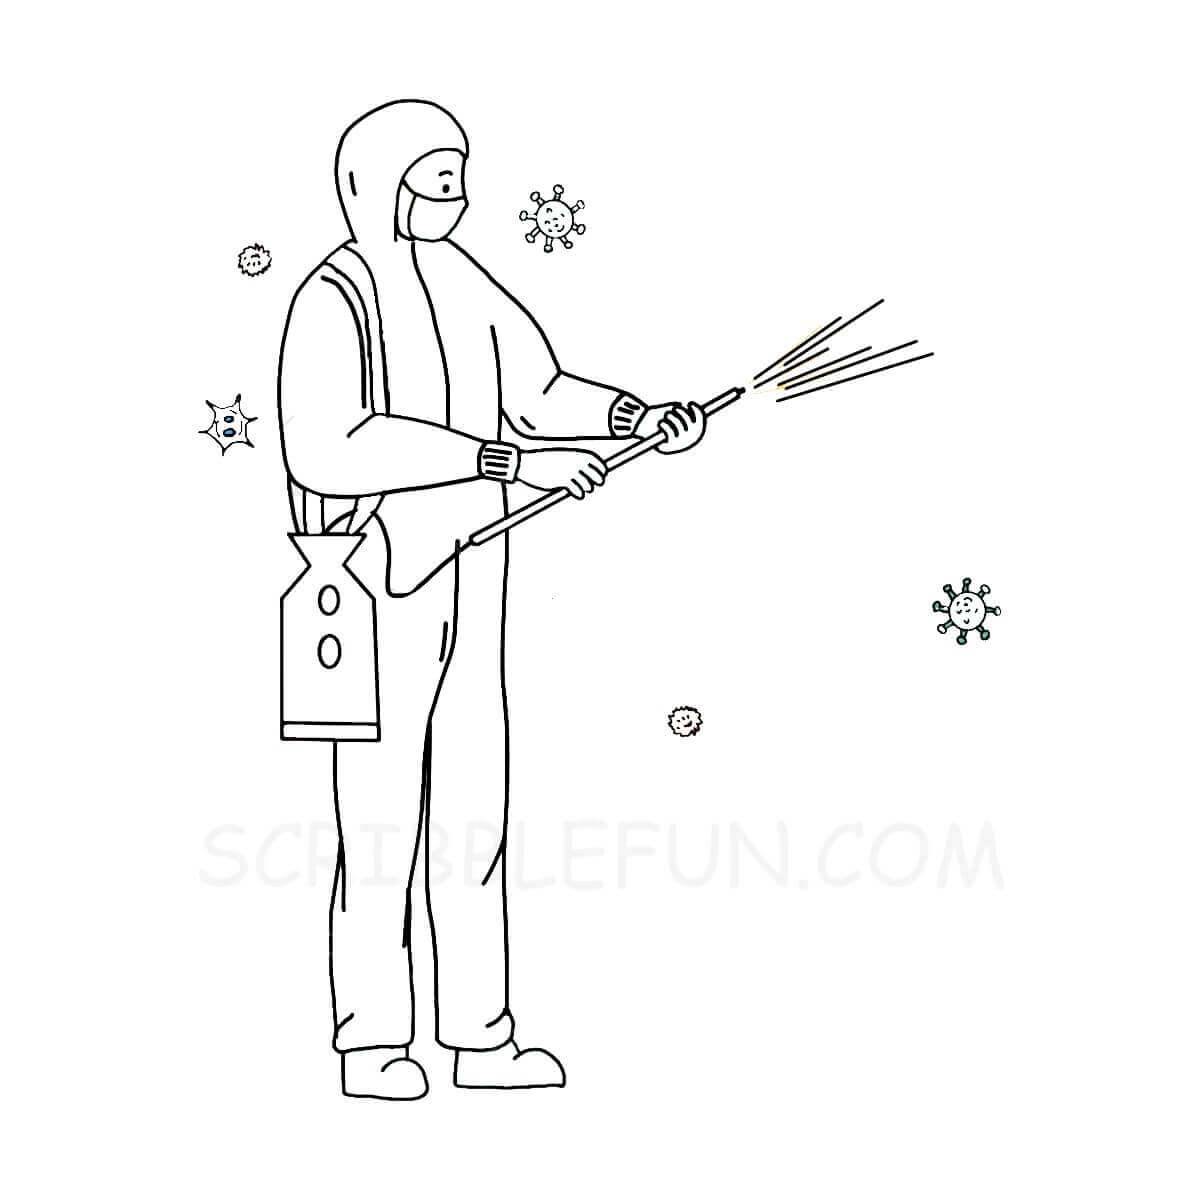 Sanitation worker coloring page